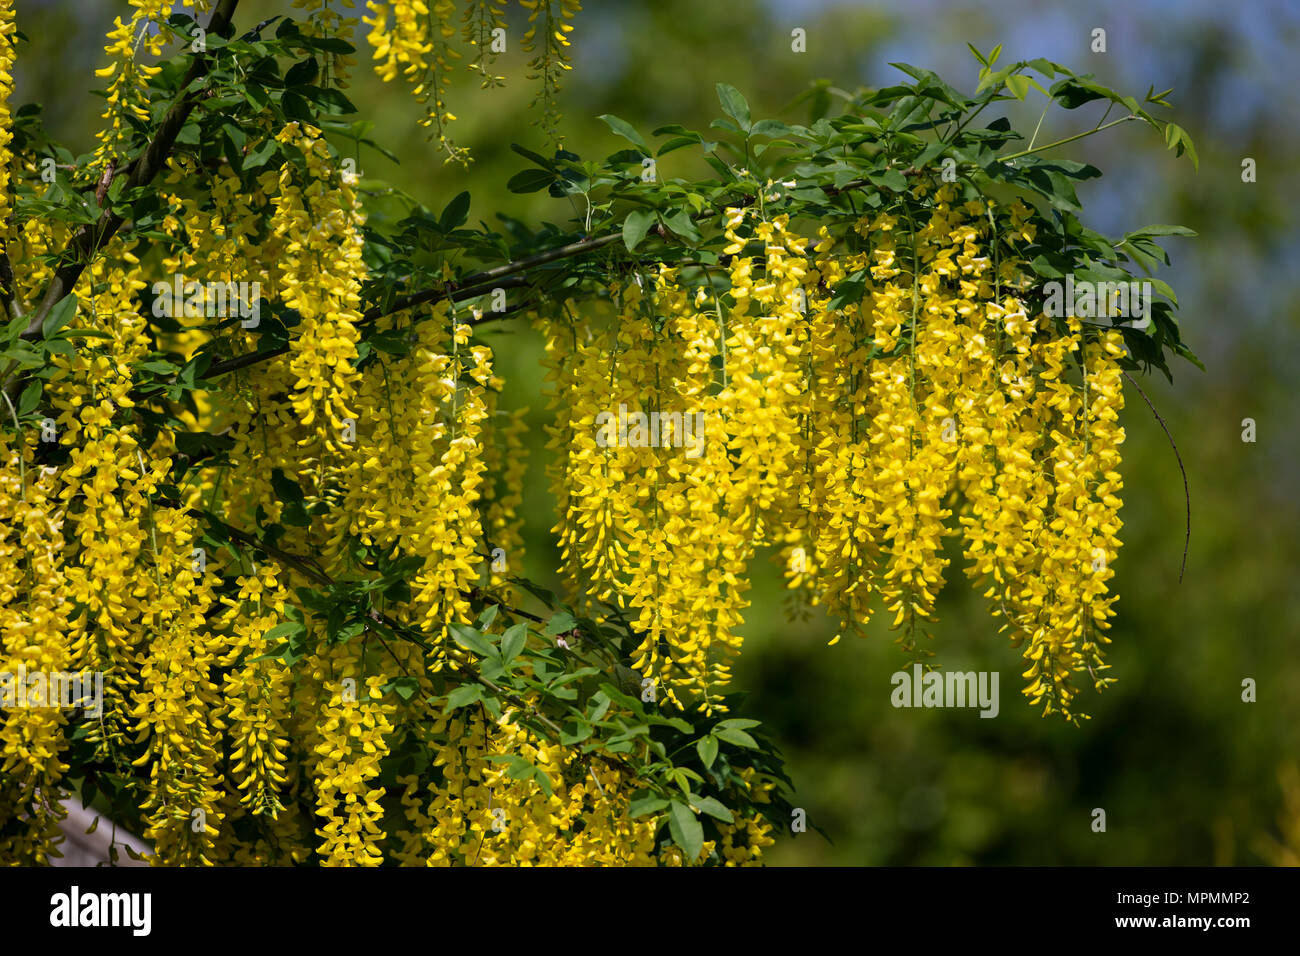 Pendulous flowers stock photos pendulous flowers stock images alamy clusters of laburnum flowers faboideae hanging from laburnum treest in mid may when at their most mightylinksfo